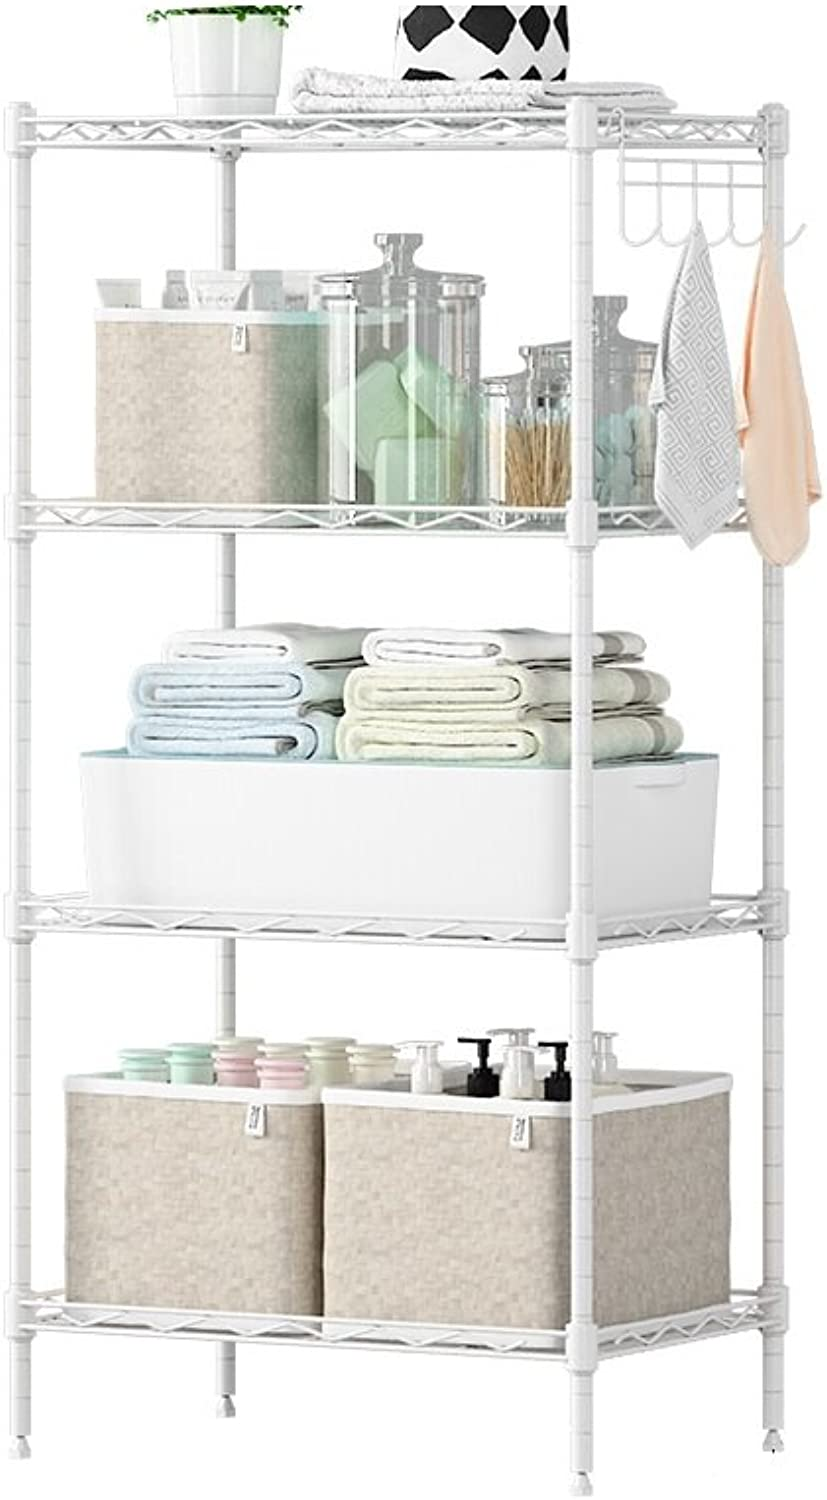 KXBYMX Modern Minimalist Economy Kitchen Shelves Metal Interior Storage Racks Metal Floor Racks Balcony Storage Shelves Storage Rack (color   White)